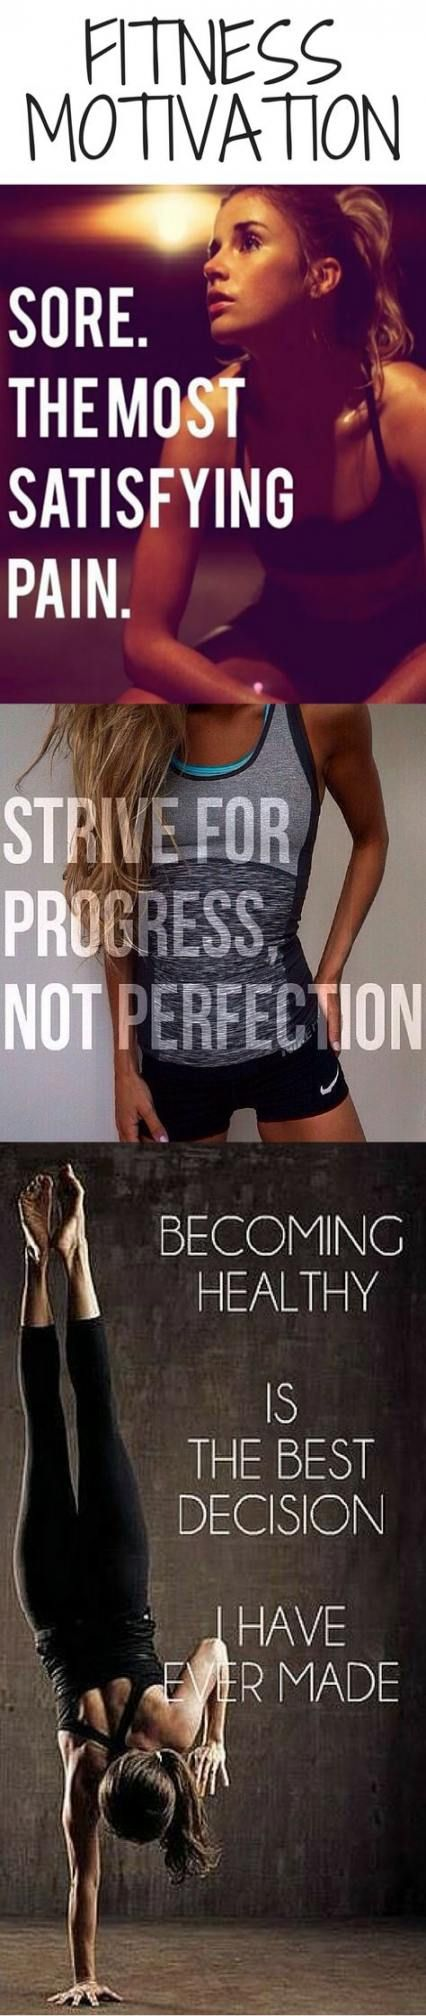 Fitness quotes for girls awesome 67 Ideas #quotes #fitness